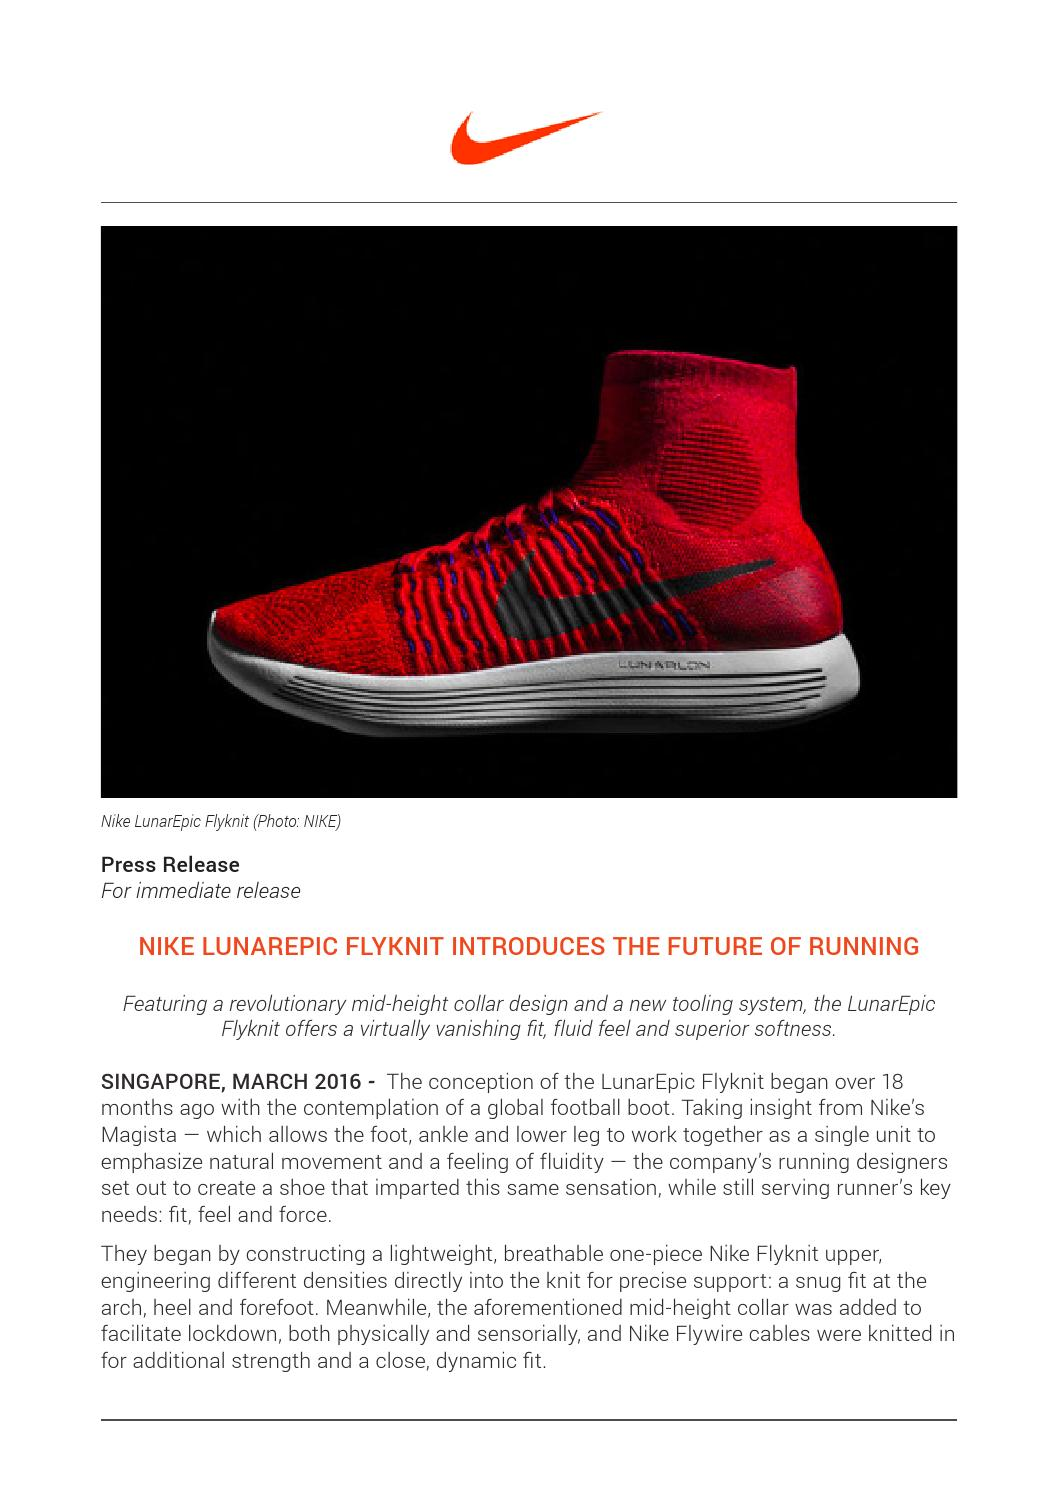 premium selection 44811 2919e Nike LunarEpic Flyknit (March 2016) by Playmaker SG - issuu